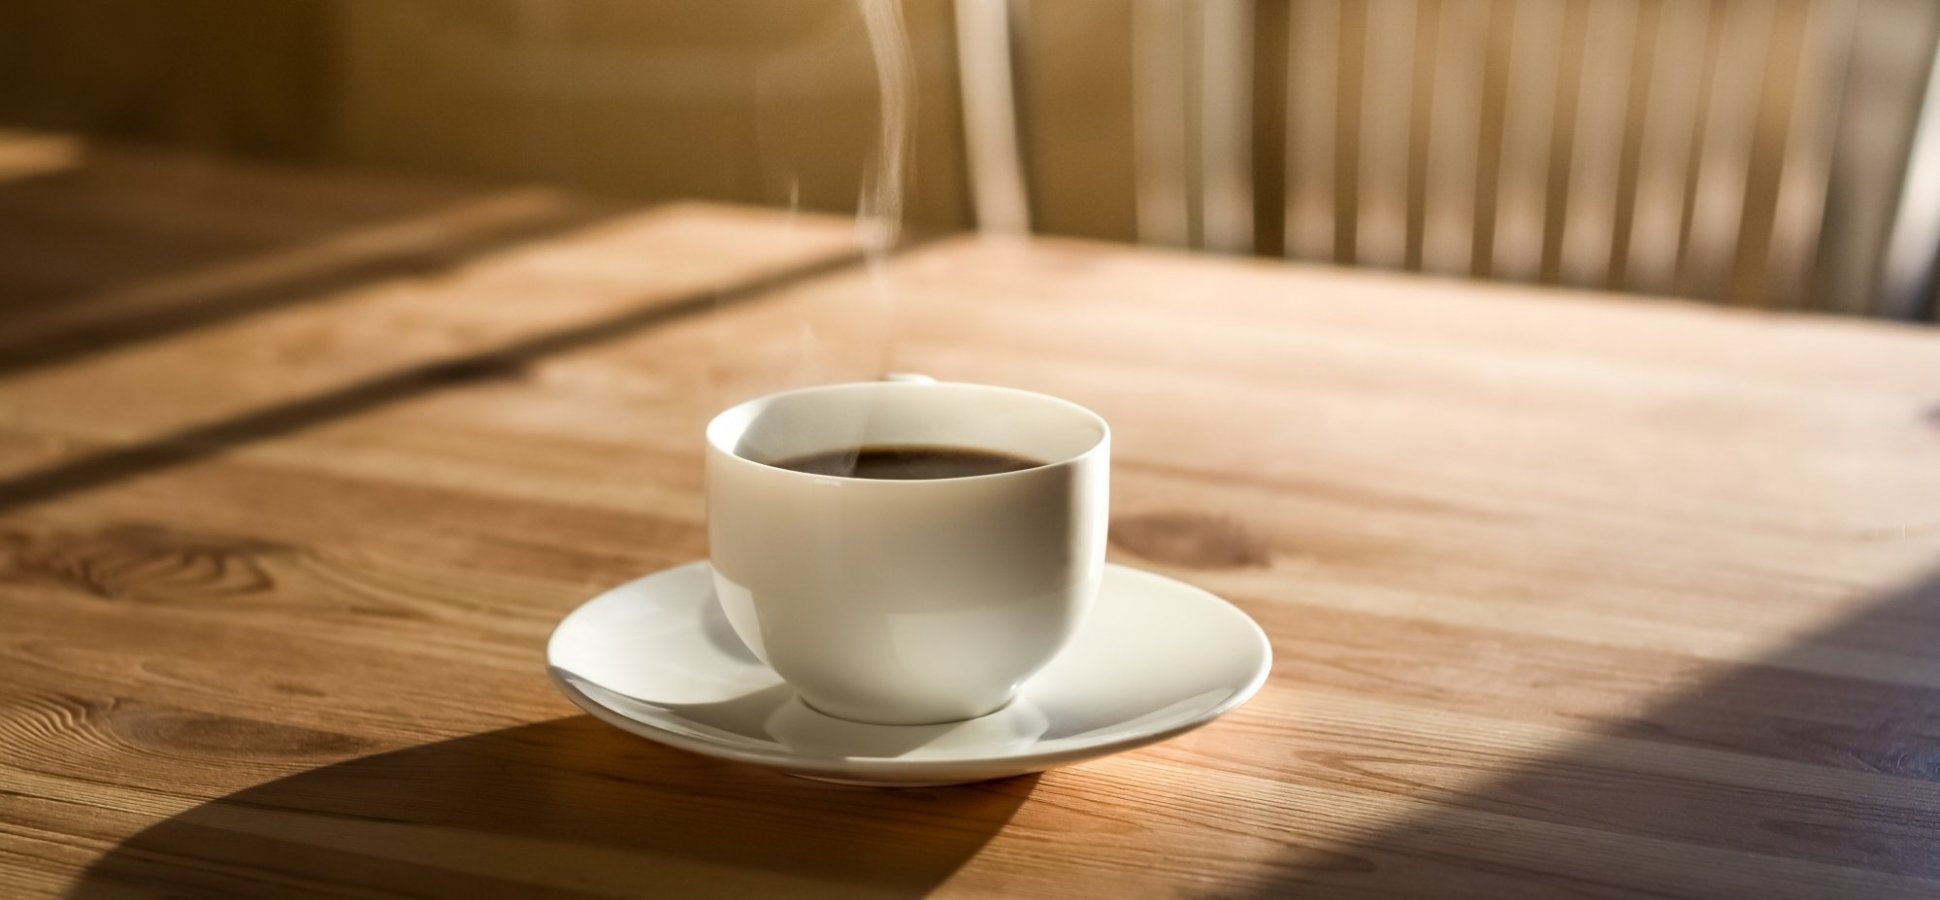 Drink a Lot of Coffee? Science Just Gave You a Really Good Reason to Feel Great About It